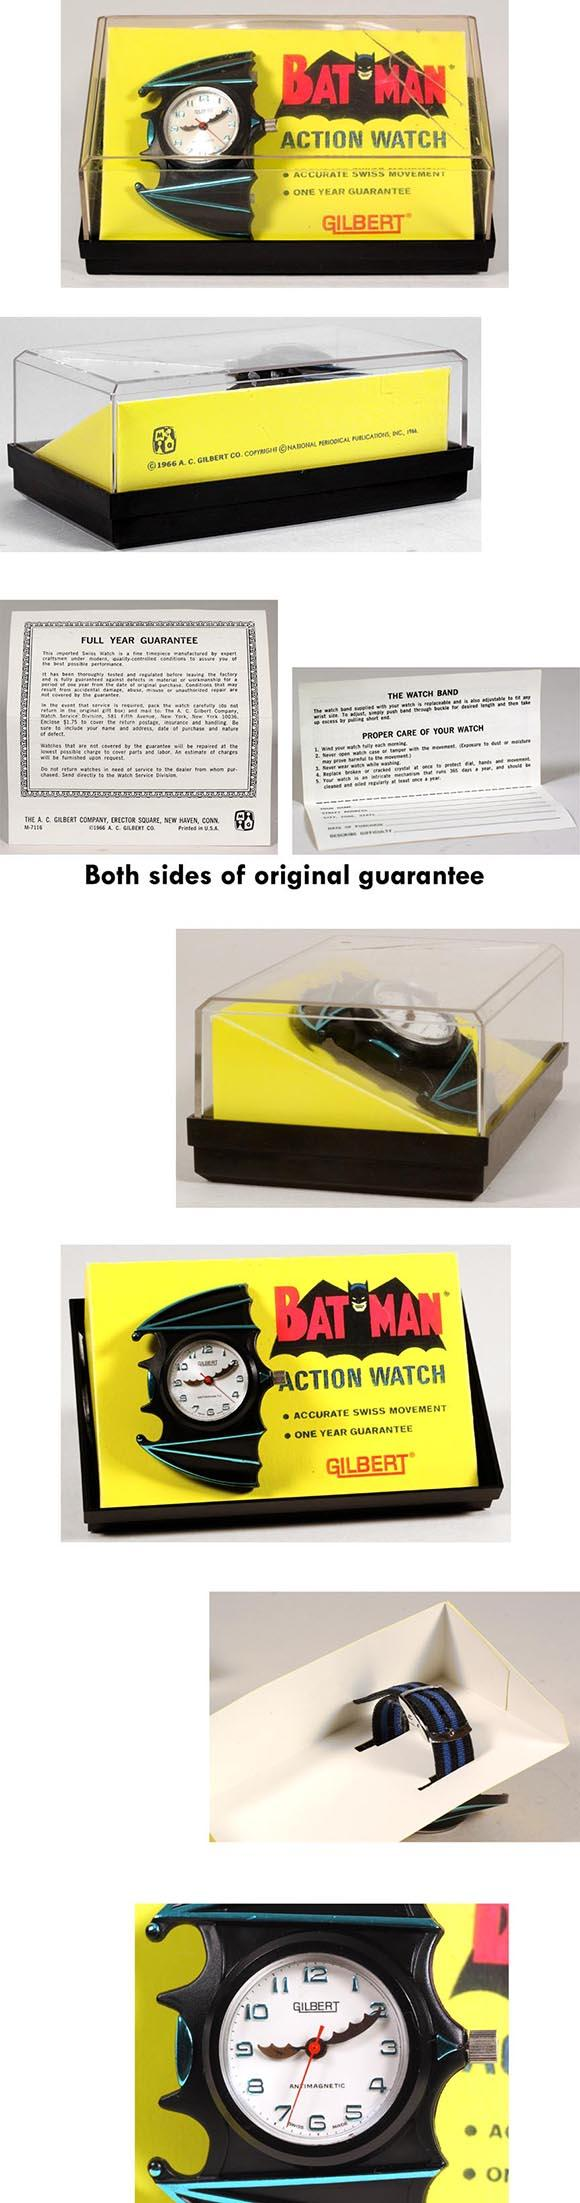 1966 A.C. Gilbert, Batman Figural Action Watch in Original Box